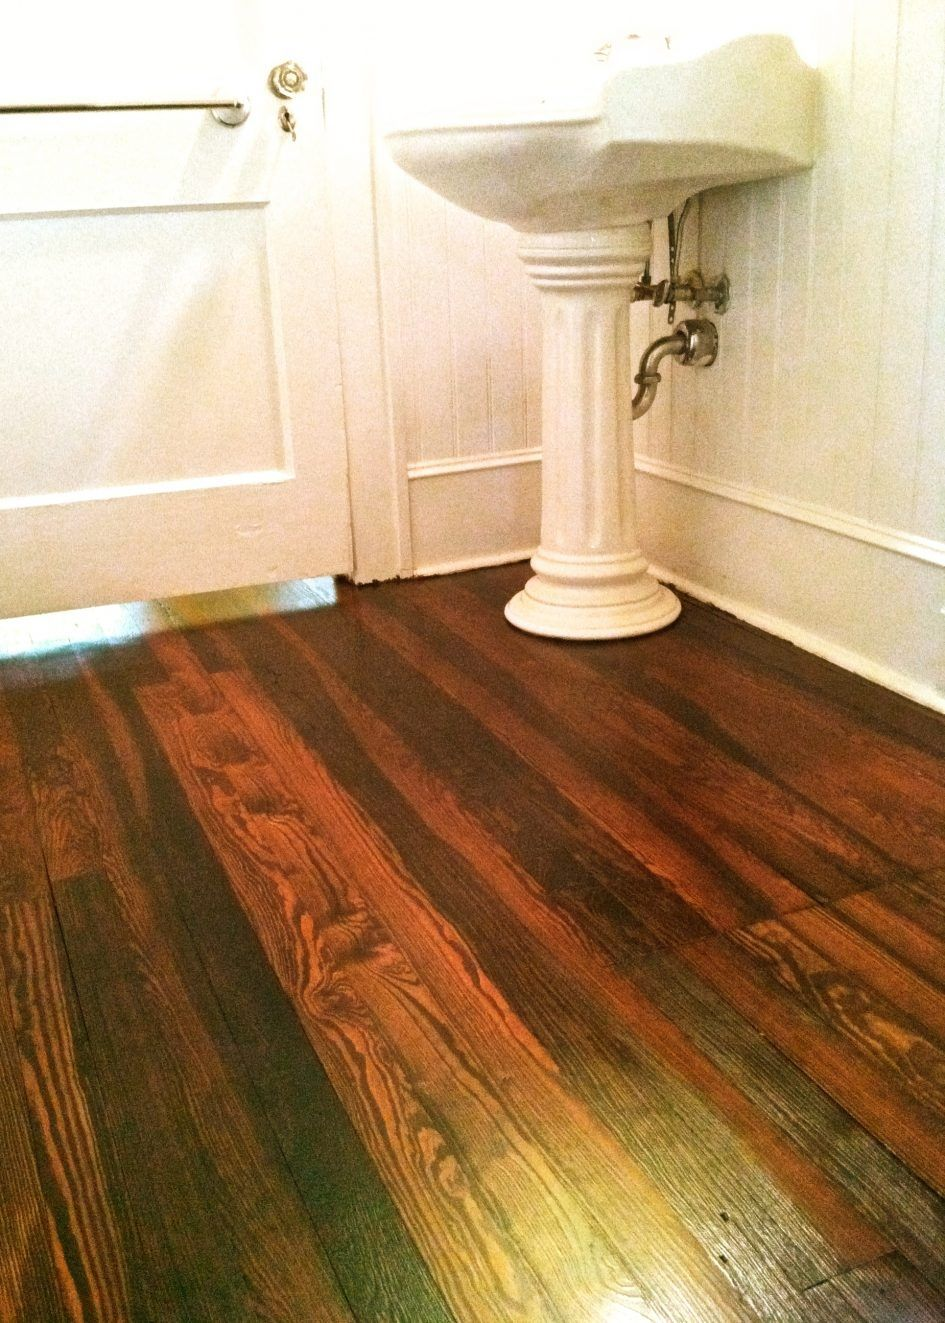 Wood Floor Wax Stripping Products Bathroom Pine Wood